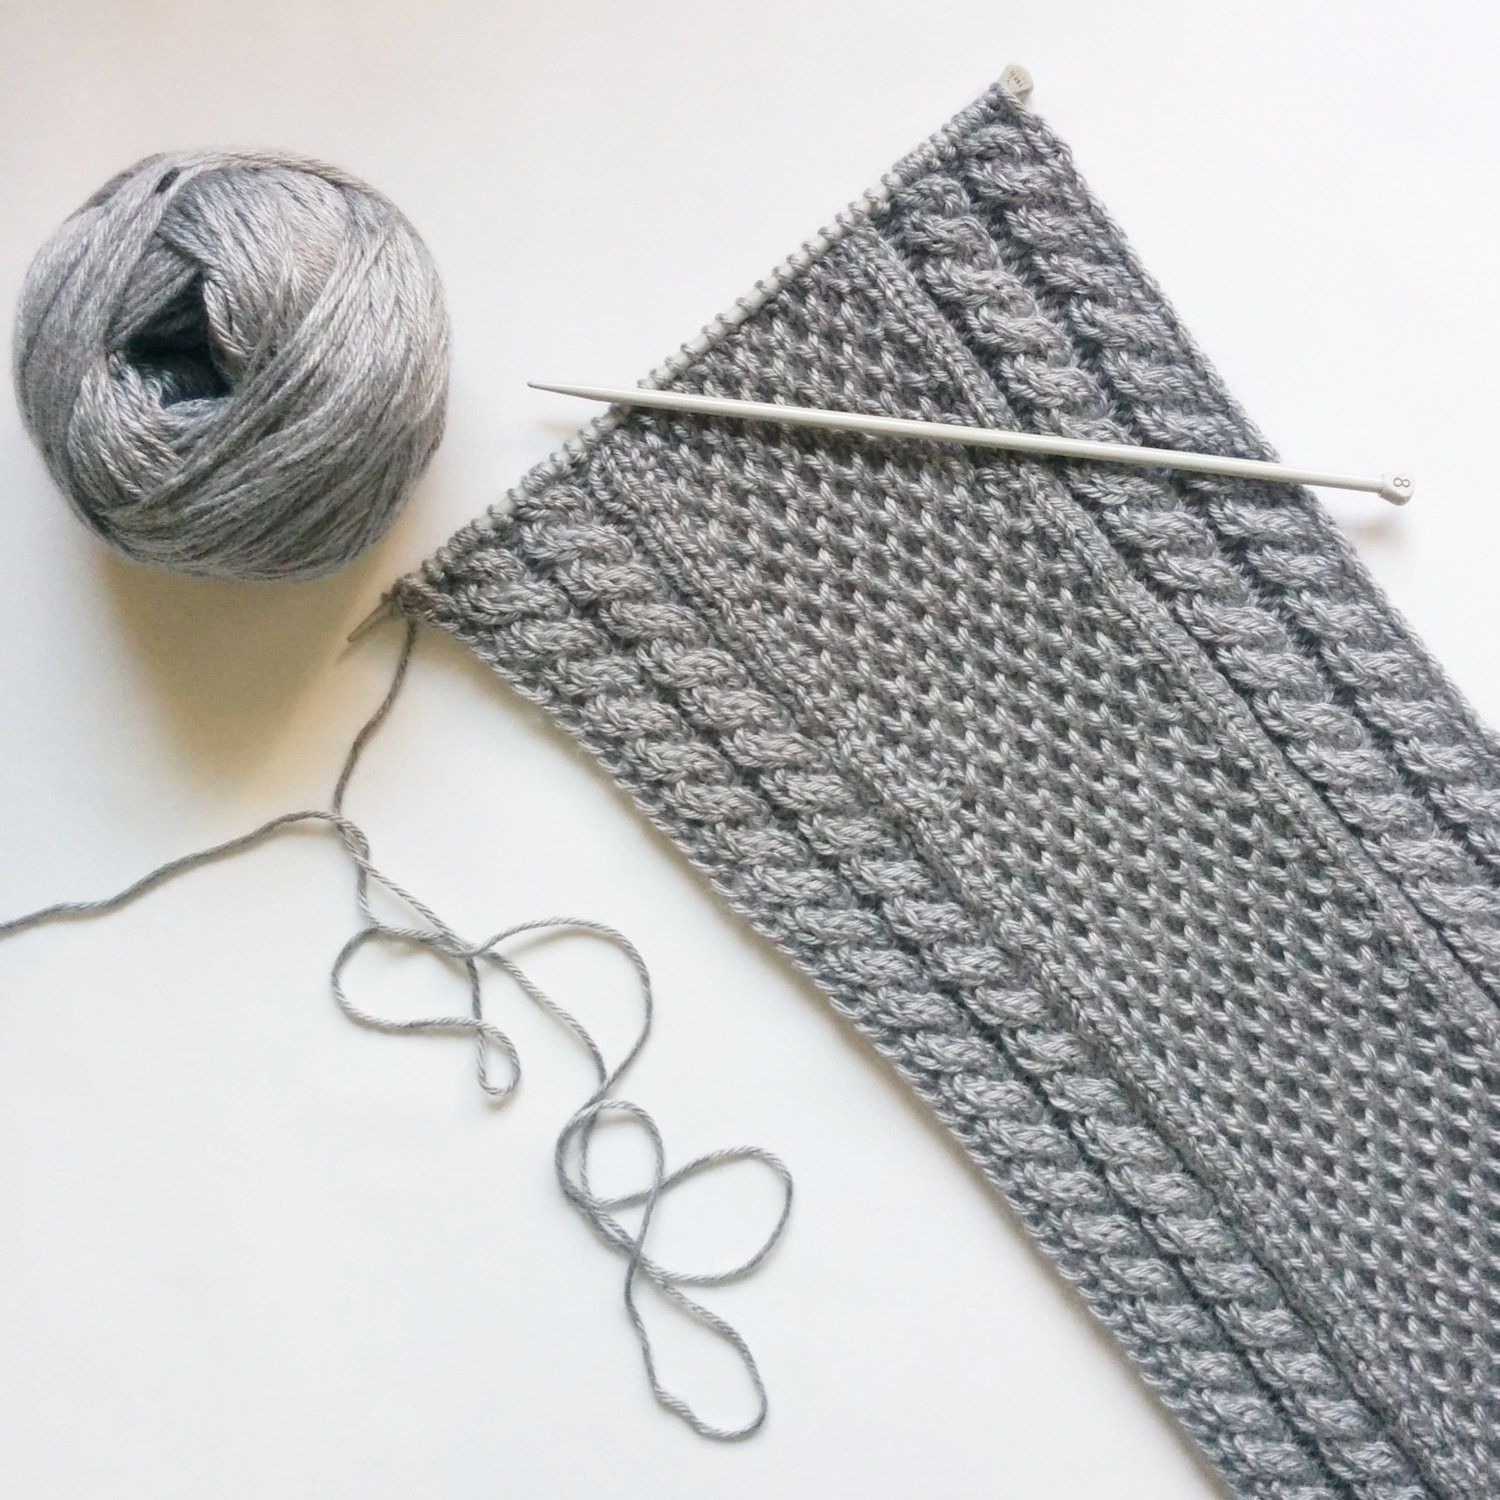 New Pattern Only Cable Knit Bee Stitch Infinity Scarf Pattern Cable Knit Scarf Of Delightful 48 Ideas Cable Knit Scarf